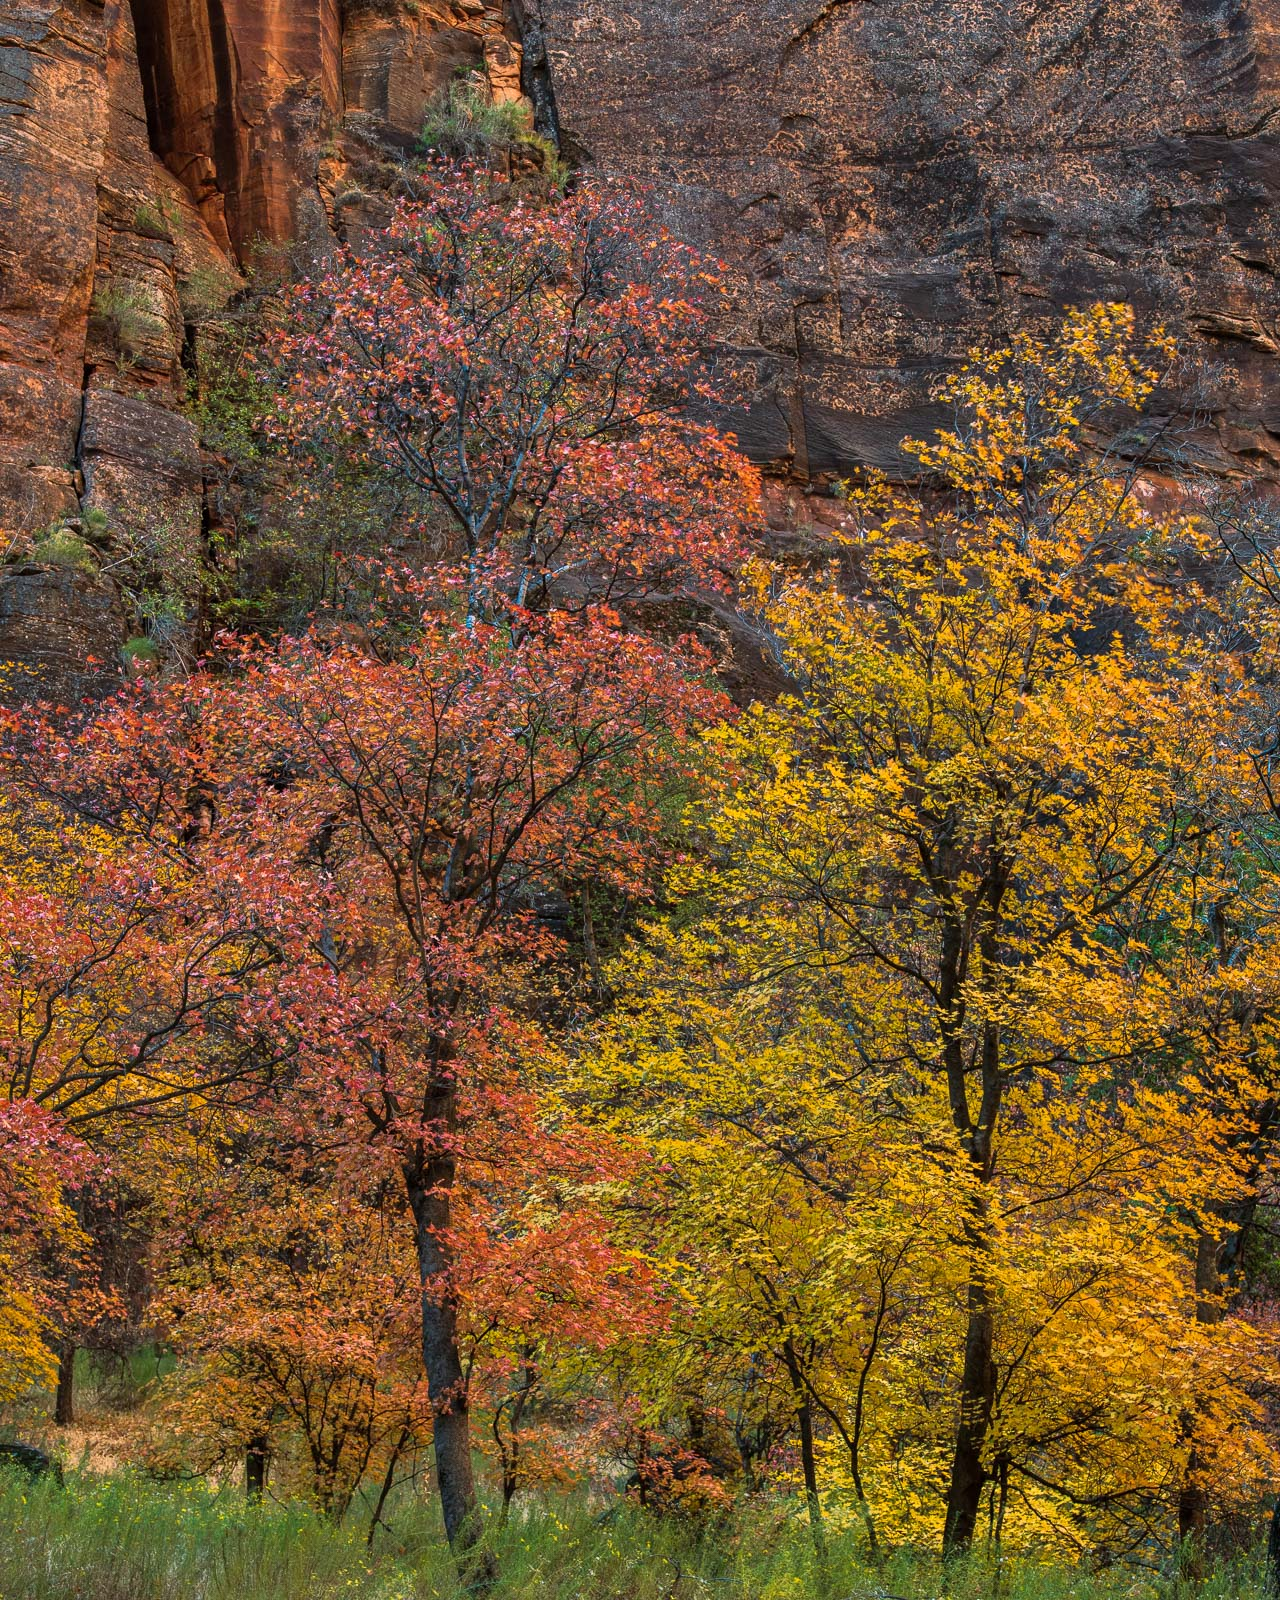 Autumn colors and canyon walls at the Temple of Sinawava.